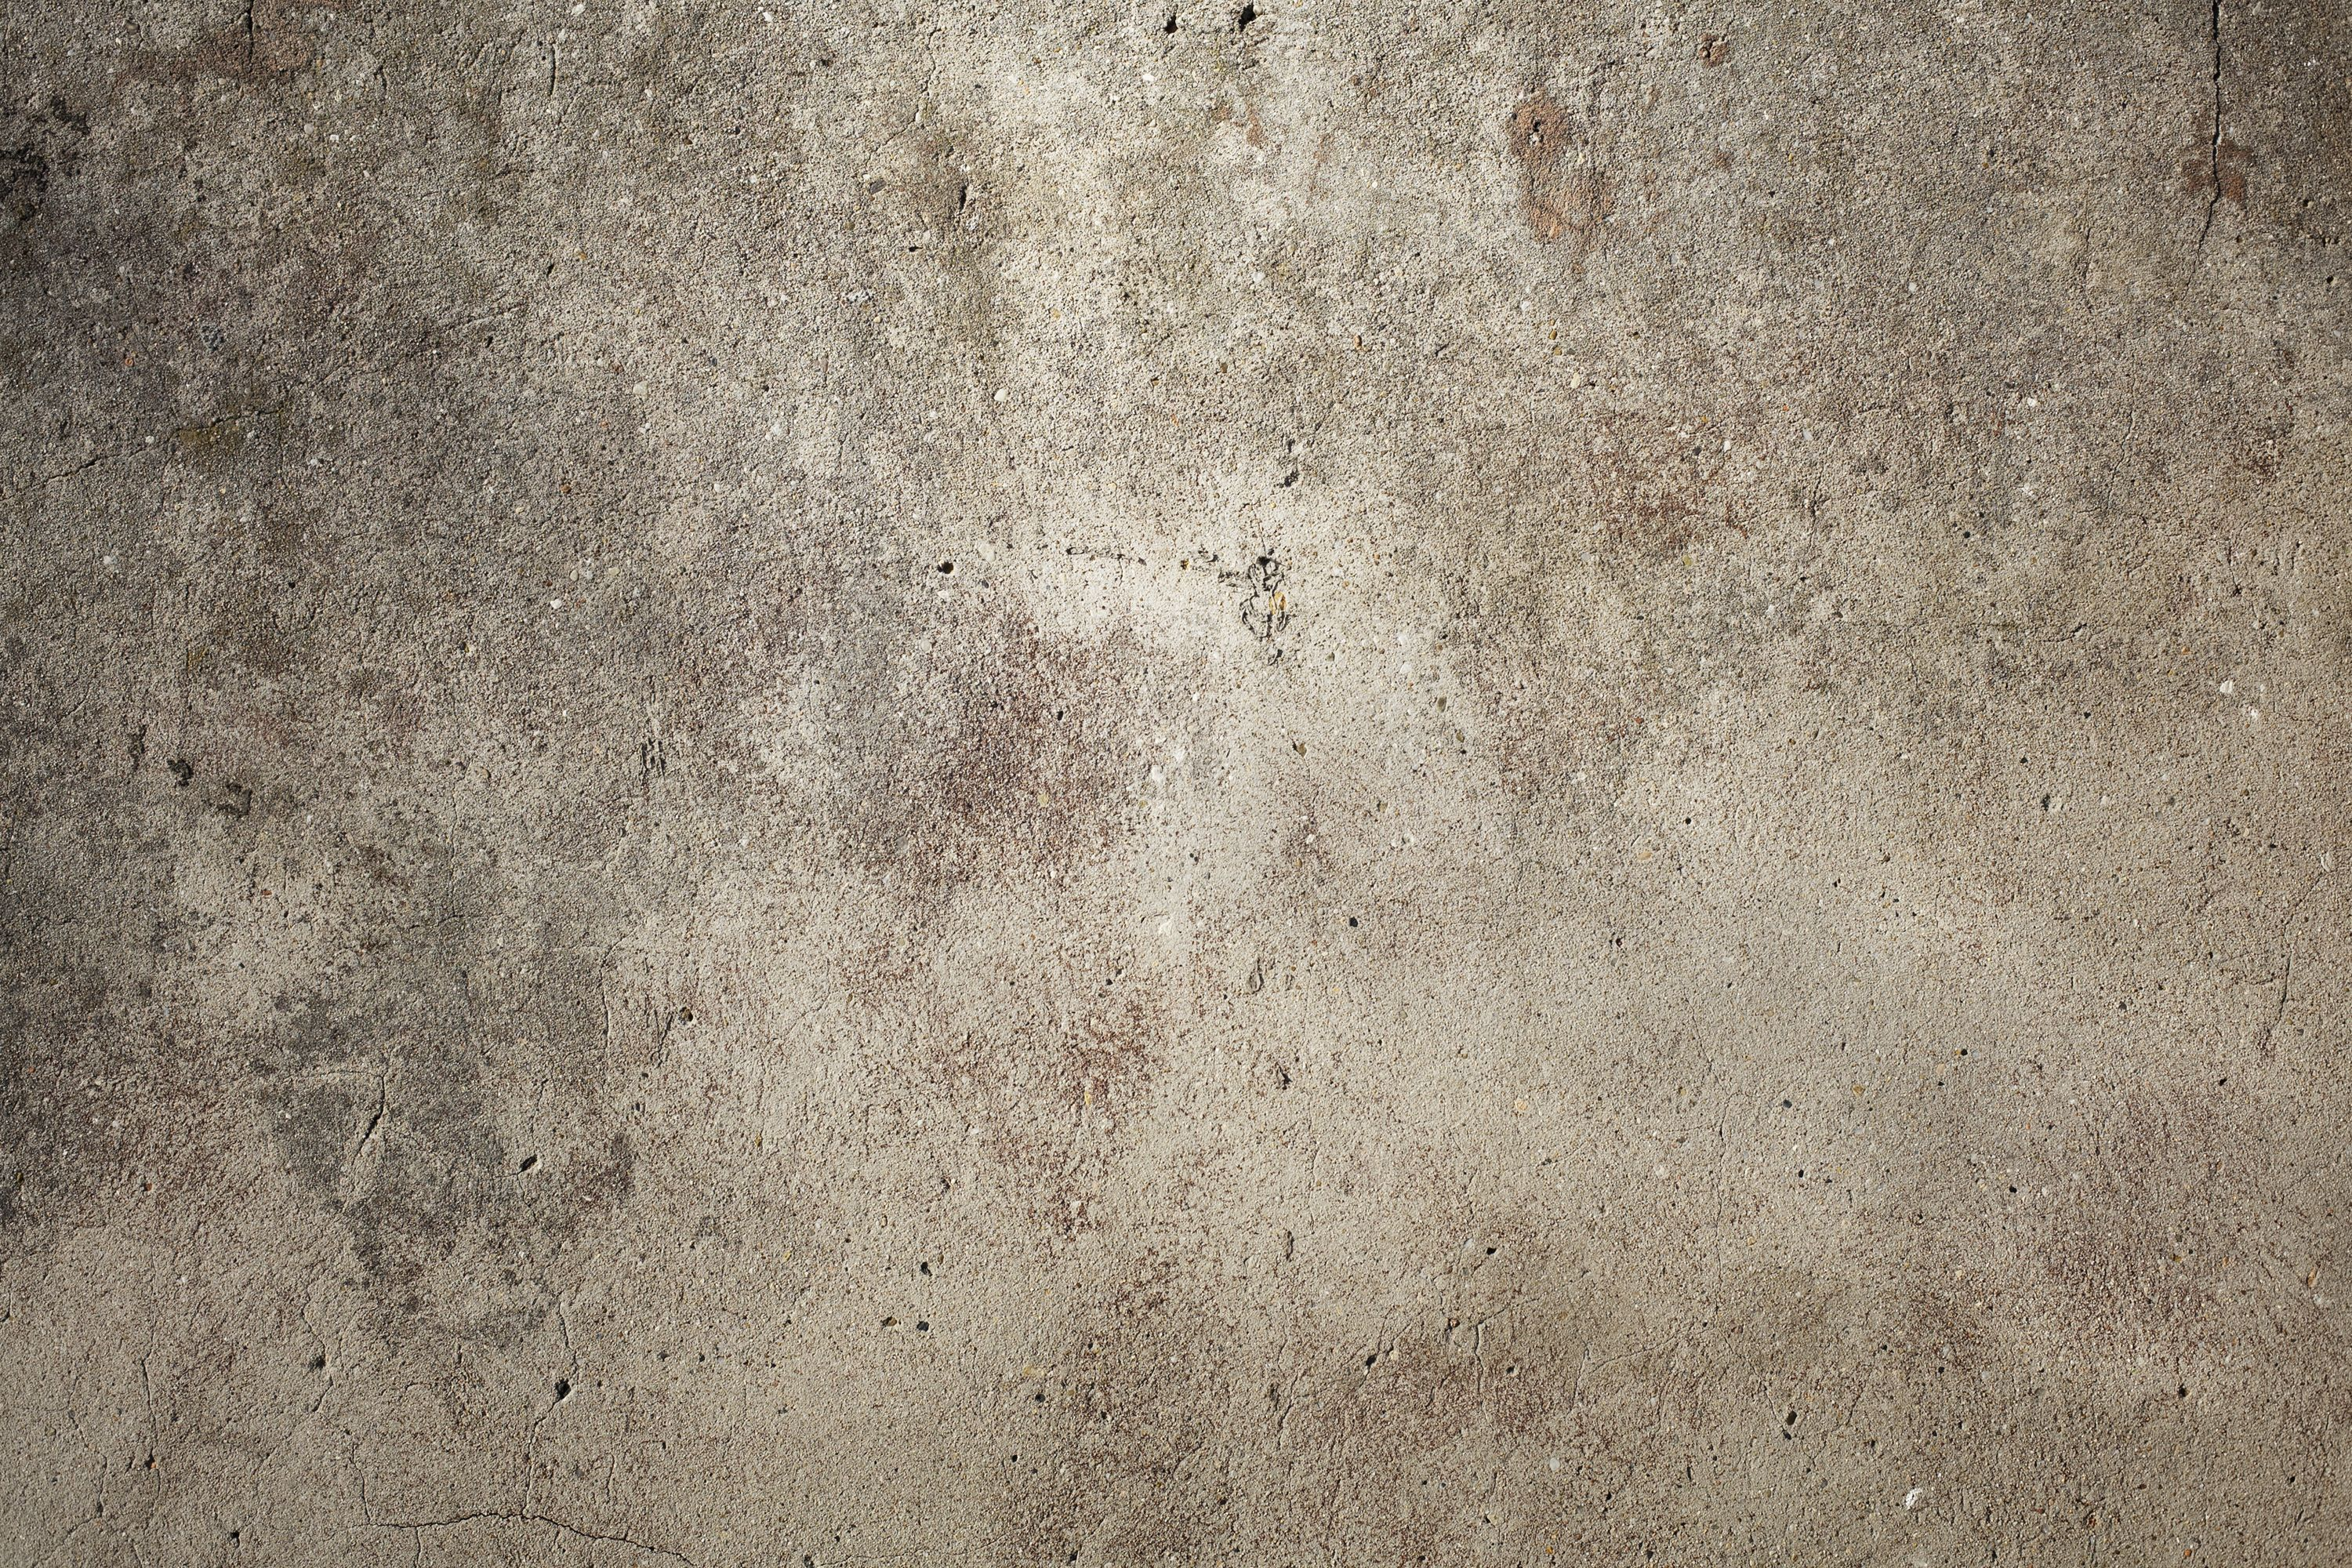 Free High Resolution Walls Bricks Textures Wild Textures Concrete Wall Texture Concrete Wall Concrete Wallpaper